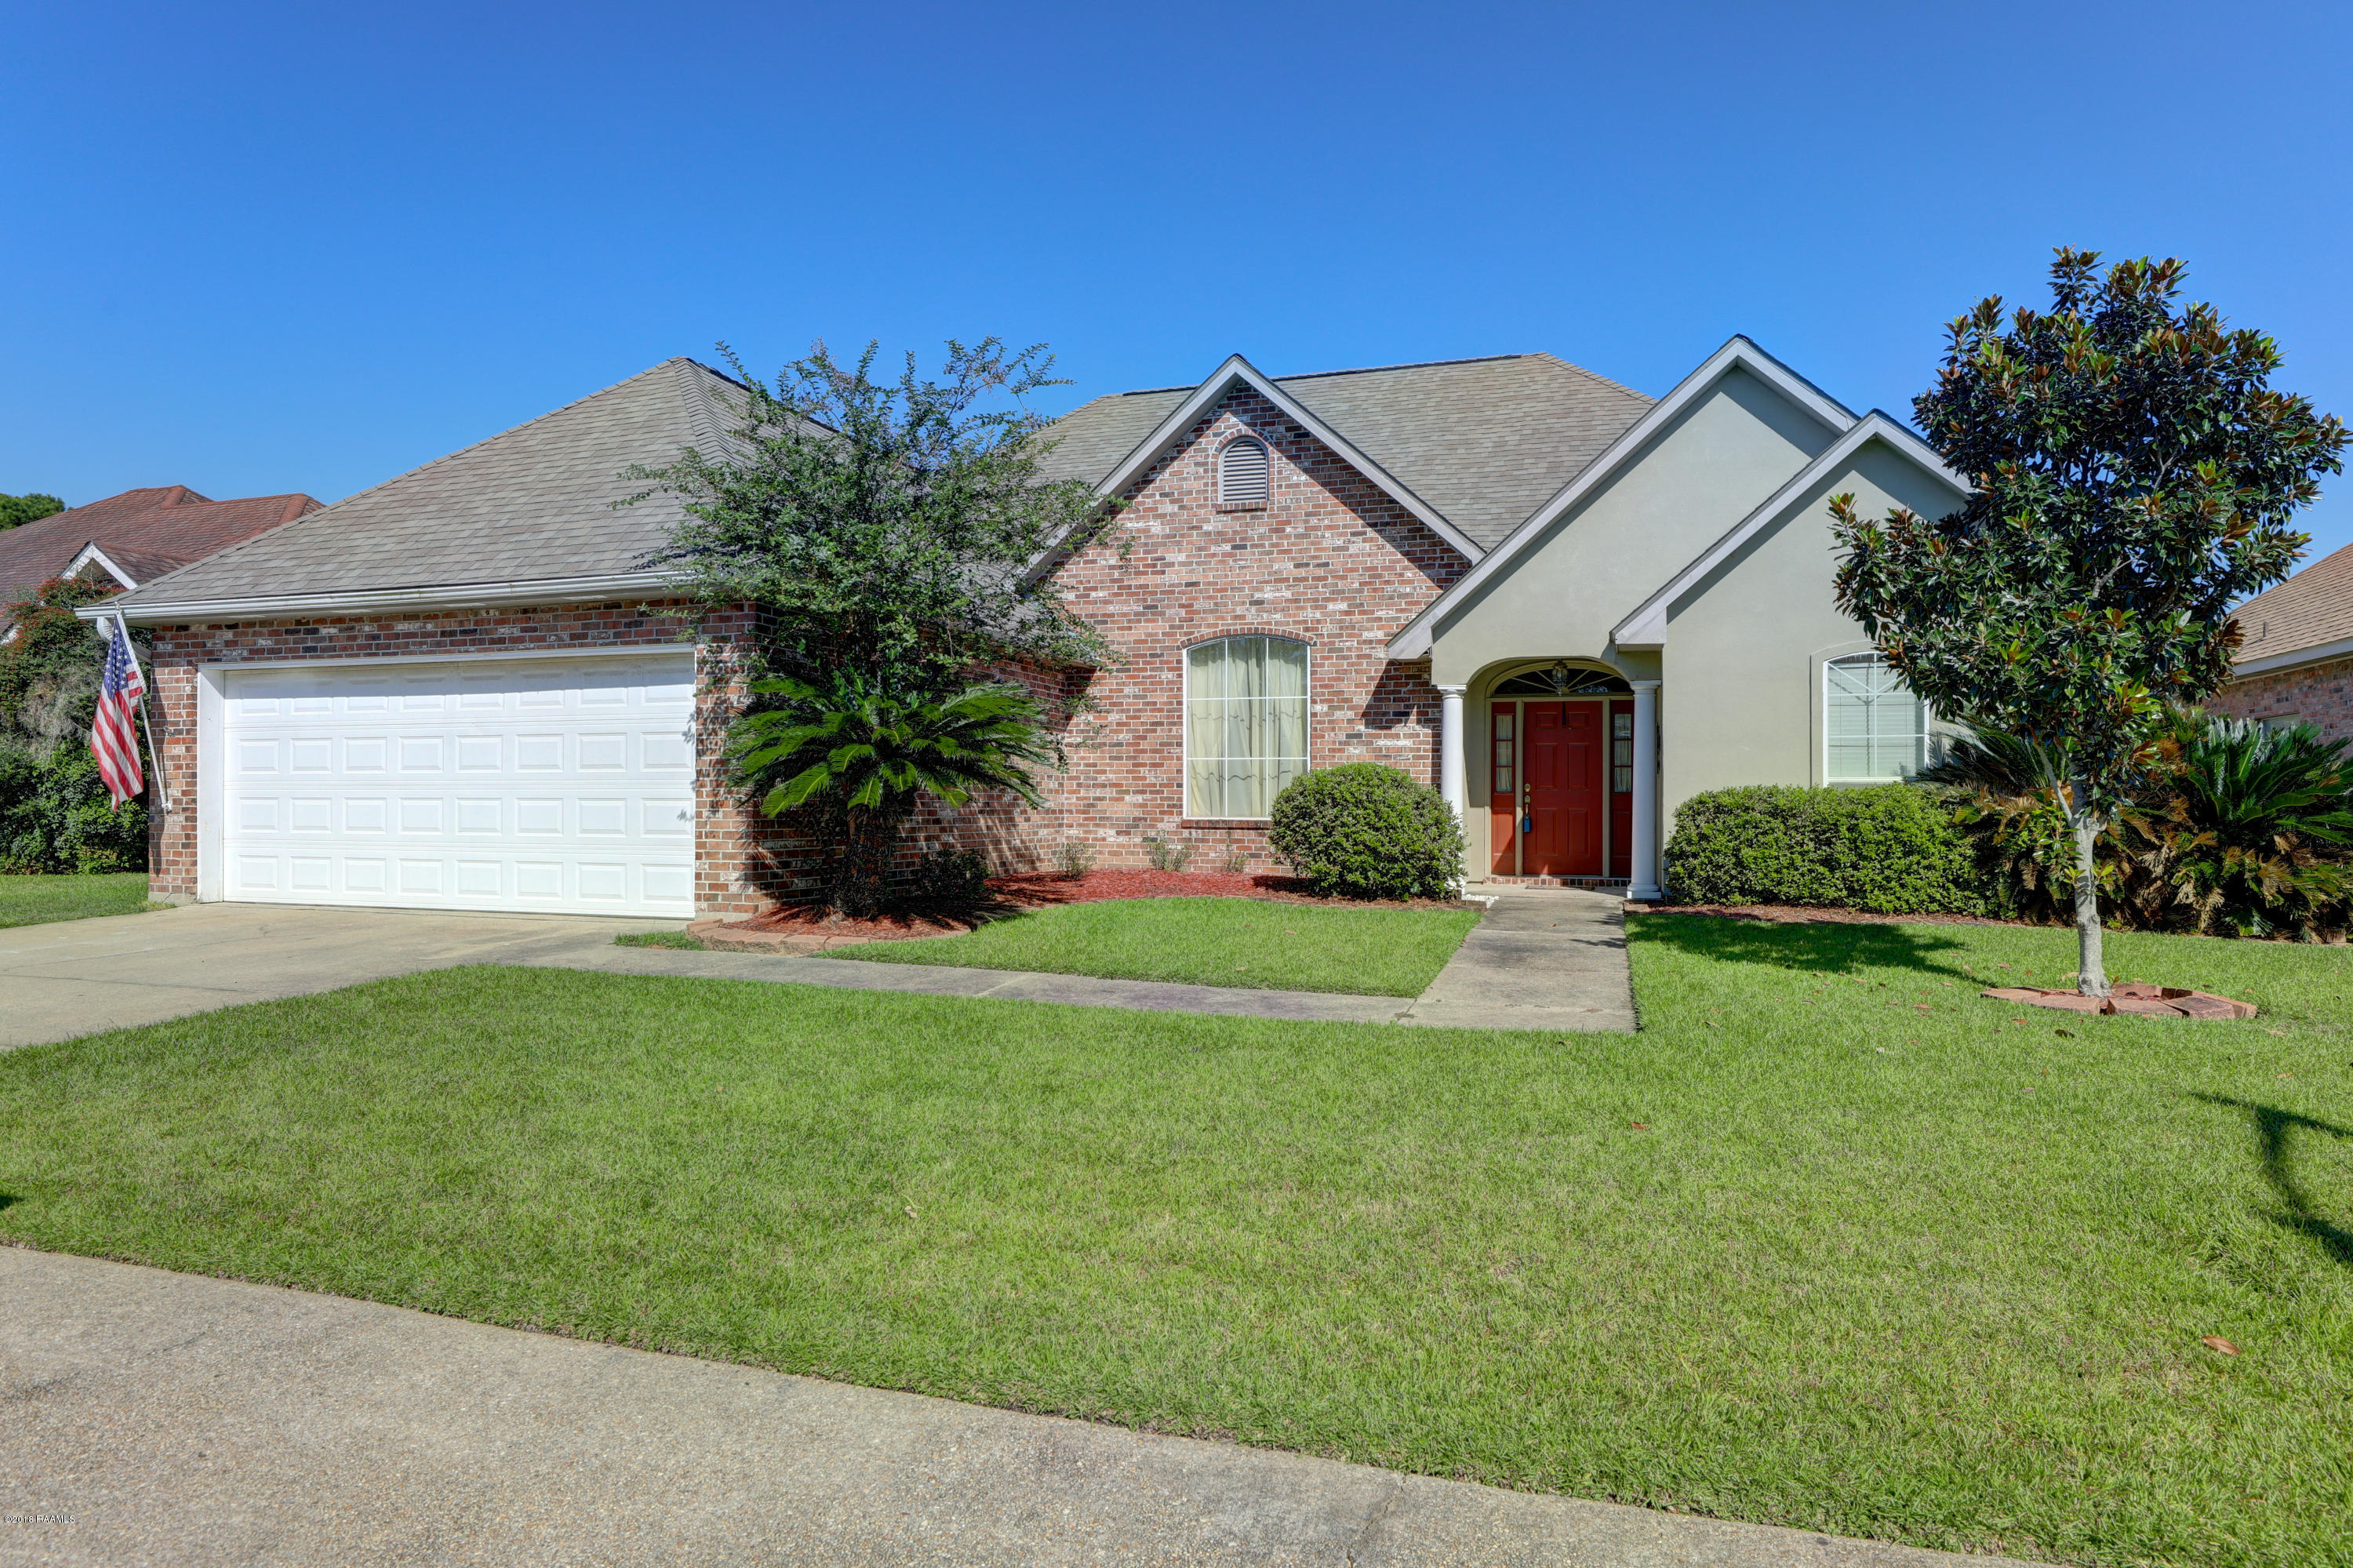 105 Gravenhage Circle, Youngsville, LA 70592 Photo #1